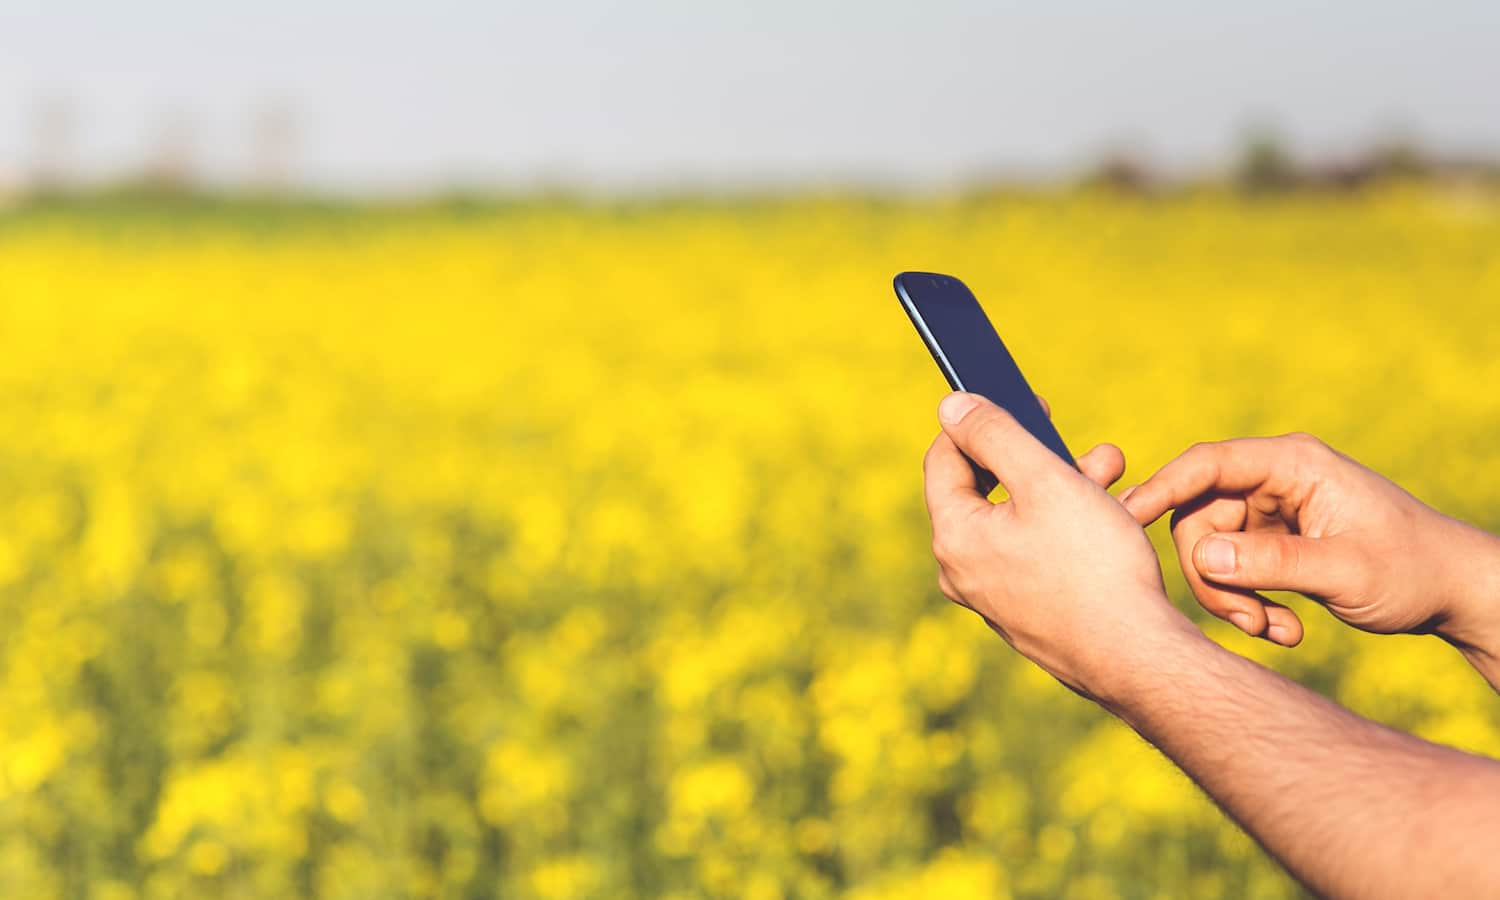 These advances in AI and Big Data are making it easier and less laborious for farmers to understand small occurrences and larger trends on their farms.